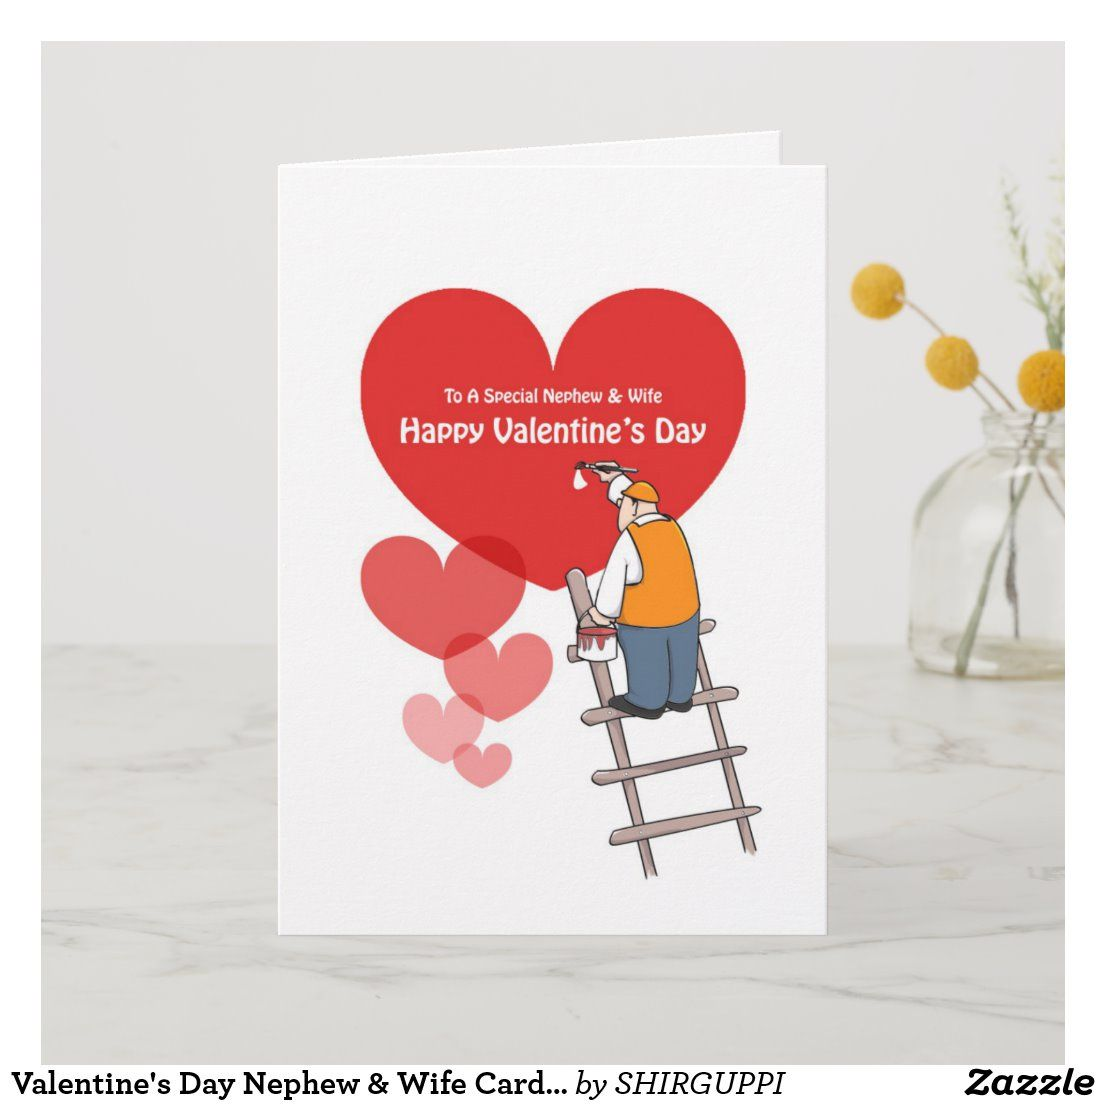 Valentine S Day Nephew Wife Cards Red Hearts Holiday Card Zazzle Com Funniest Valentines Cards Valentines Day Cartoons Holiday Design Card